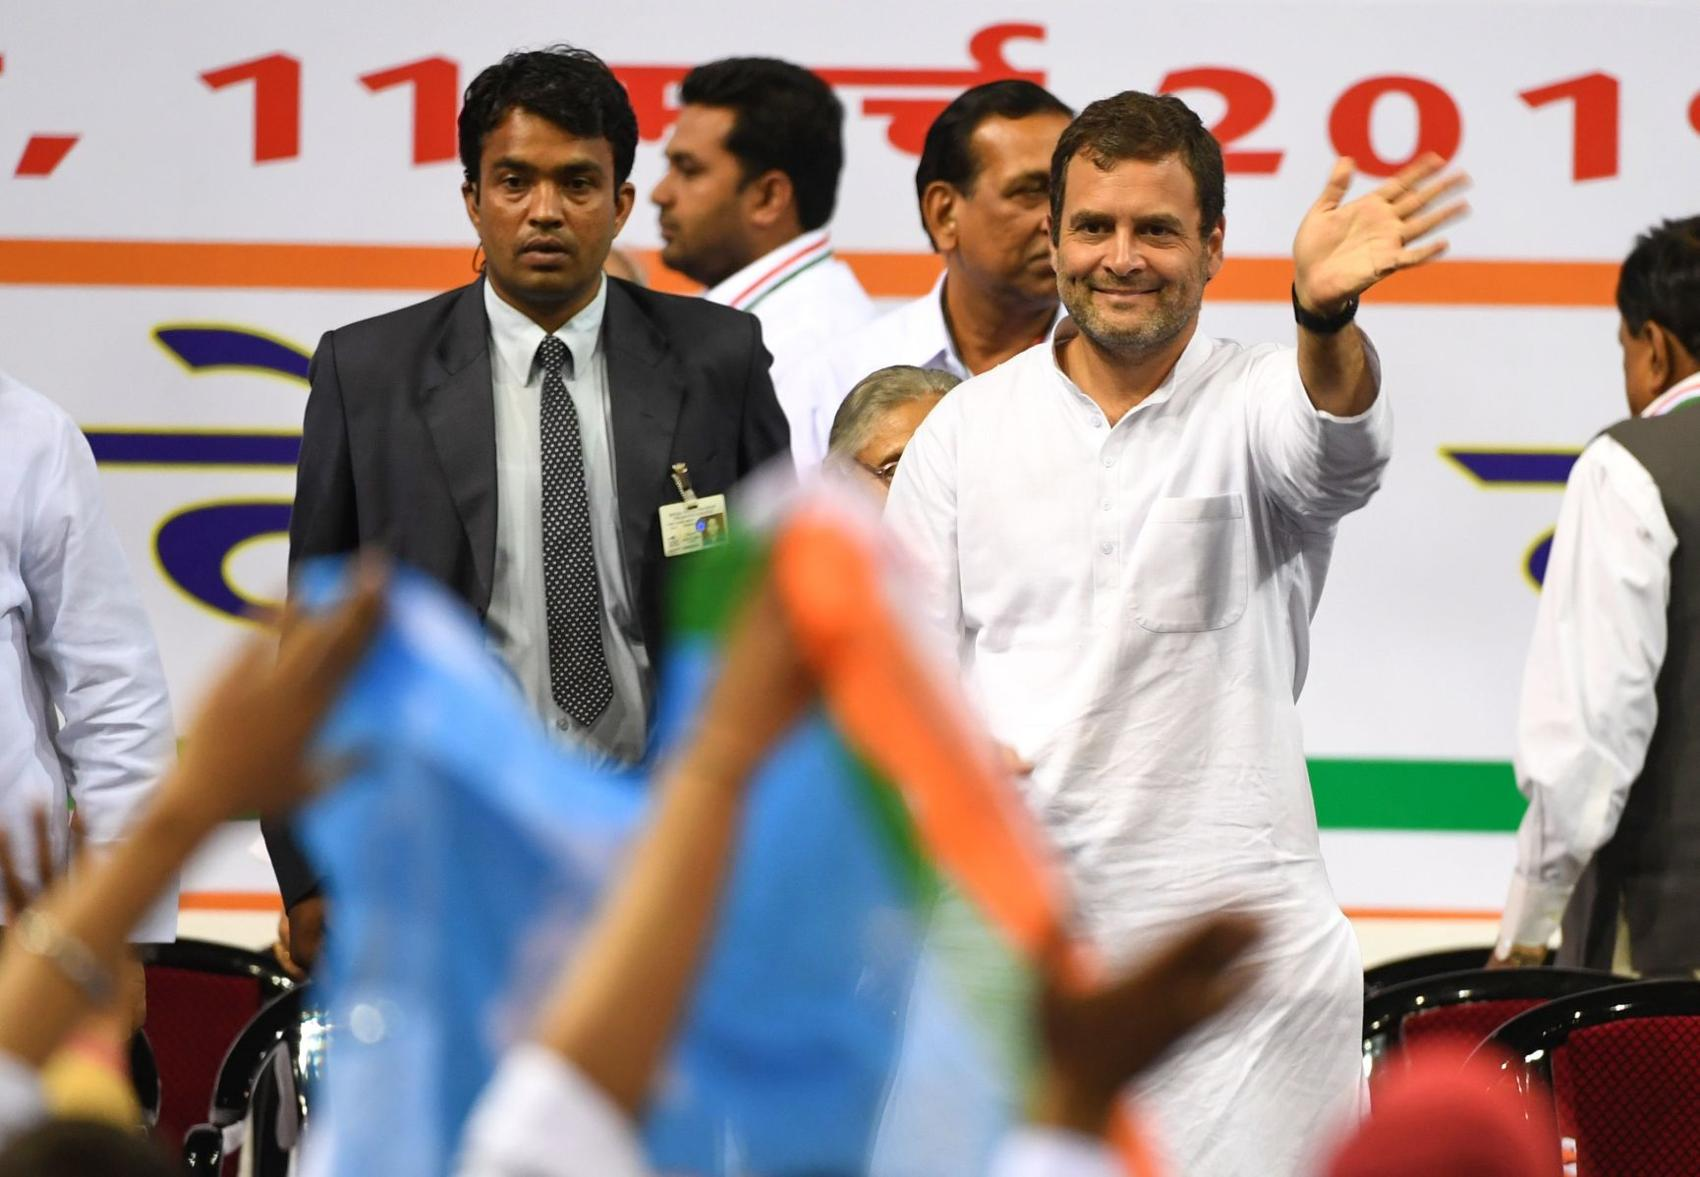 Congress Party Launches Lok Sabha Election Campaign from Opposition Modi's Home Turf